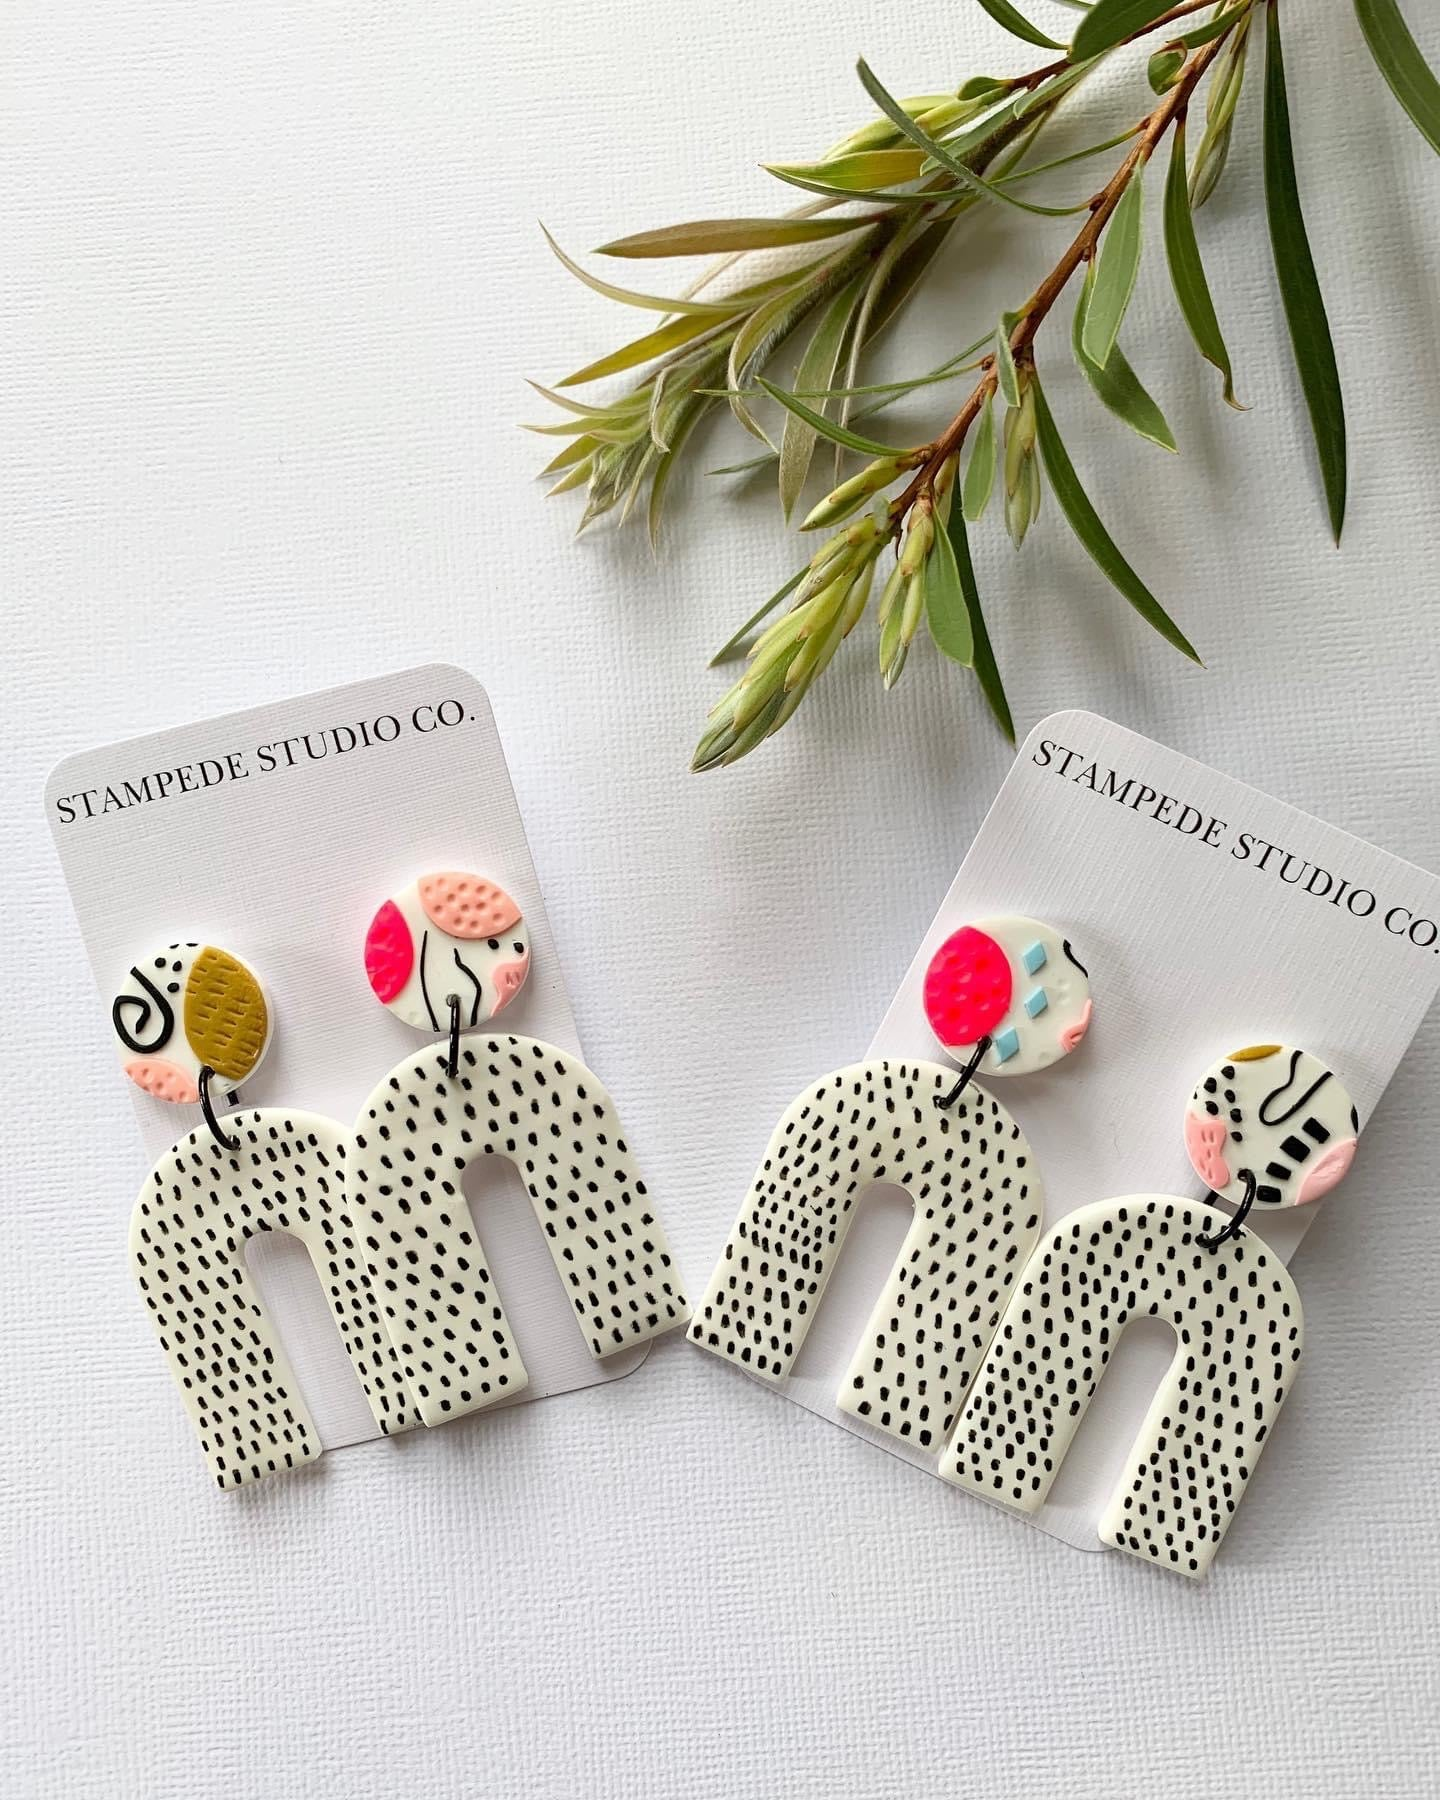 Stampede Studio Co Statement Earring